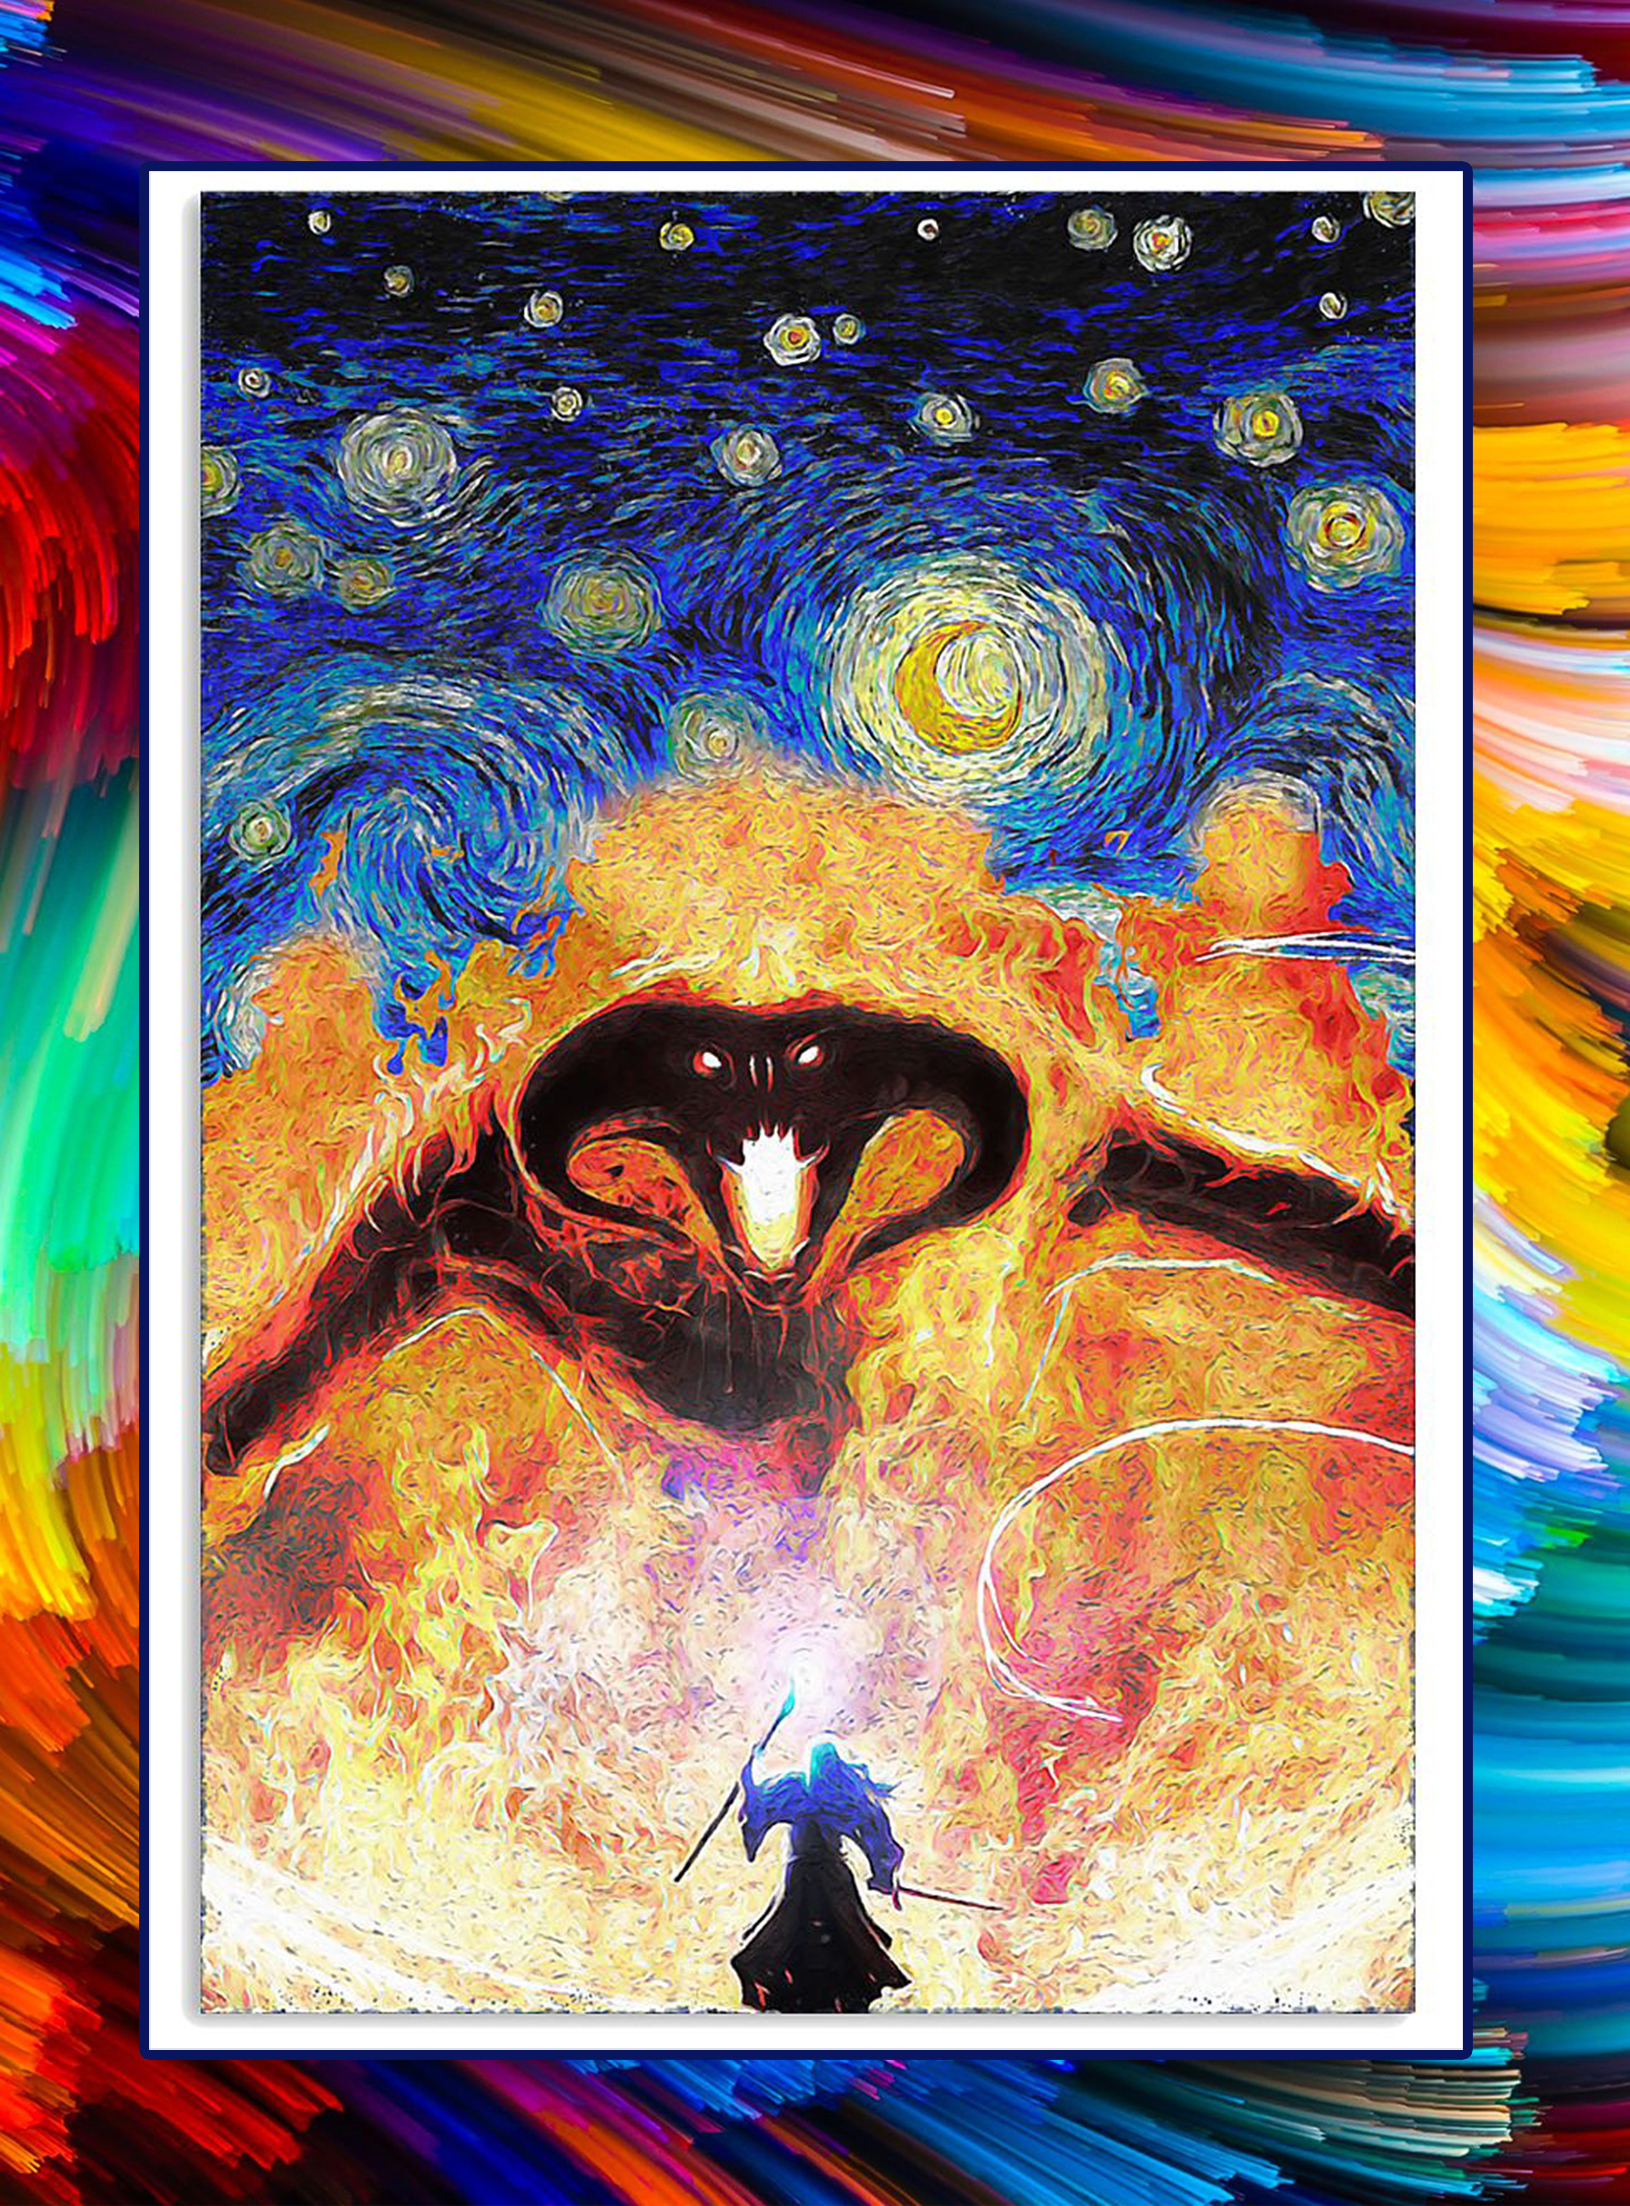 Balrog fire demon starry night poster - A3